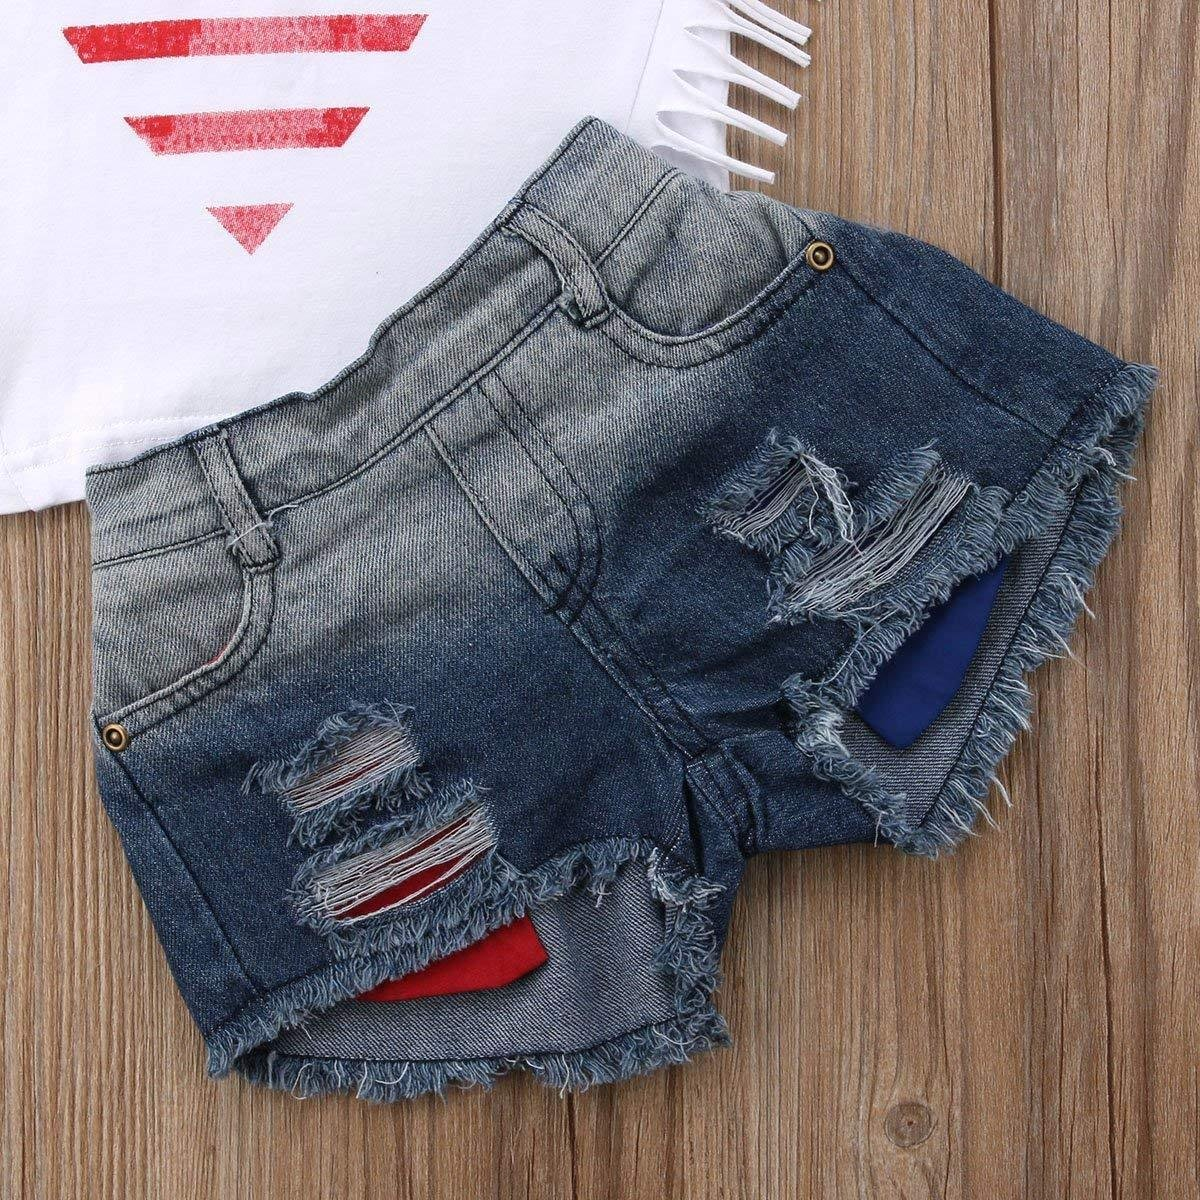 Ripped Denim Shorts Clothes Set Newborn Infant Baby Girls Outfits USA Flag Stripe Star Print Sleeveless Pullover T-Shirt 2-3 Years